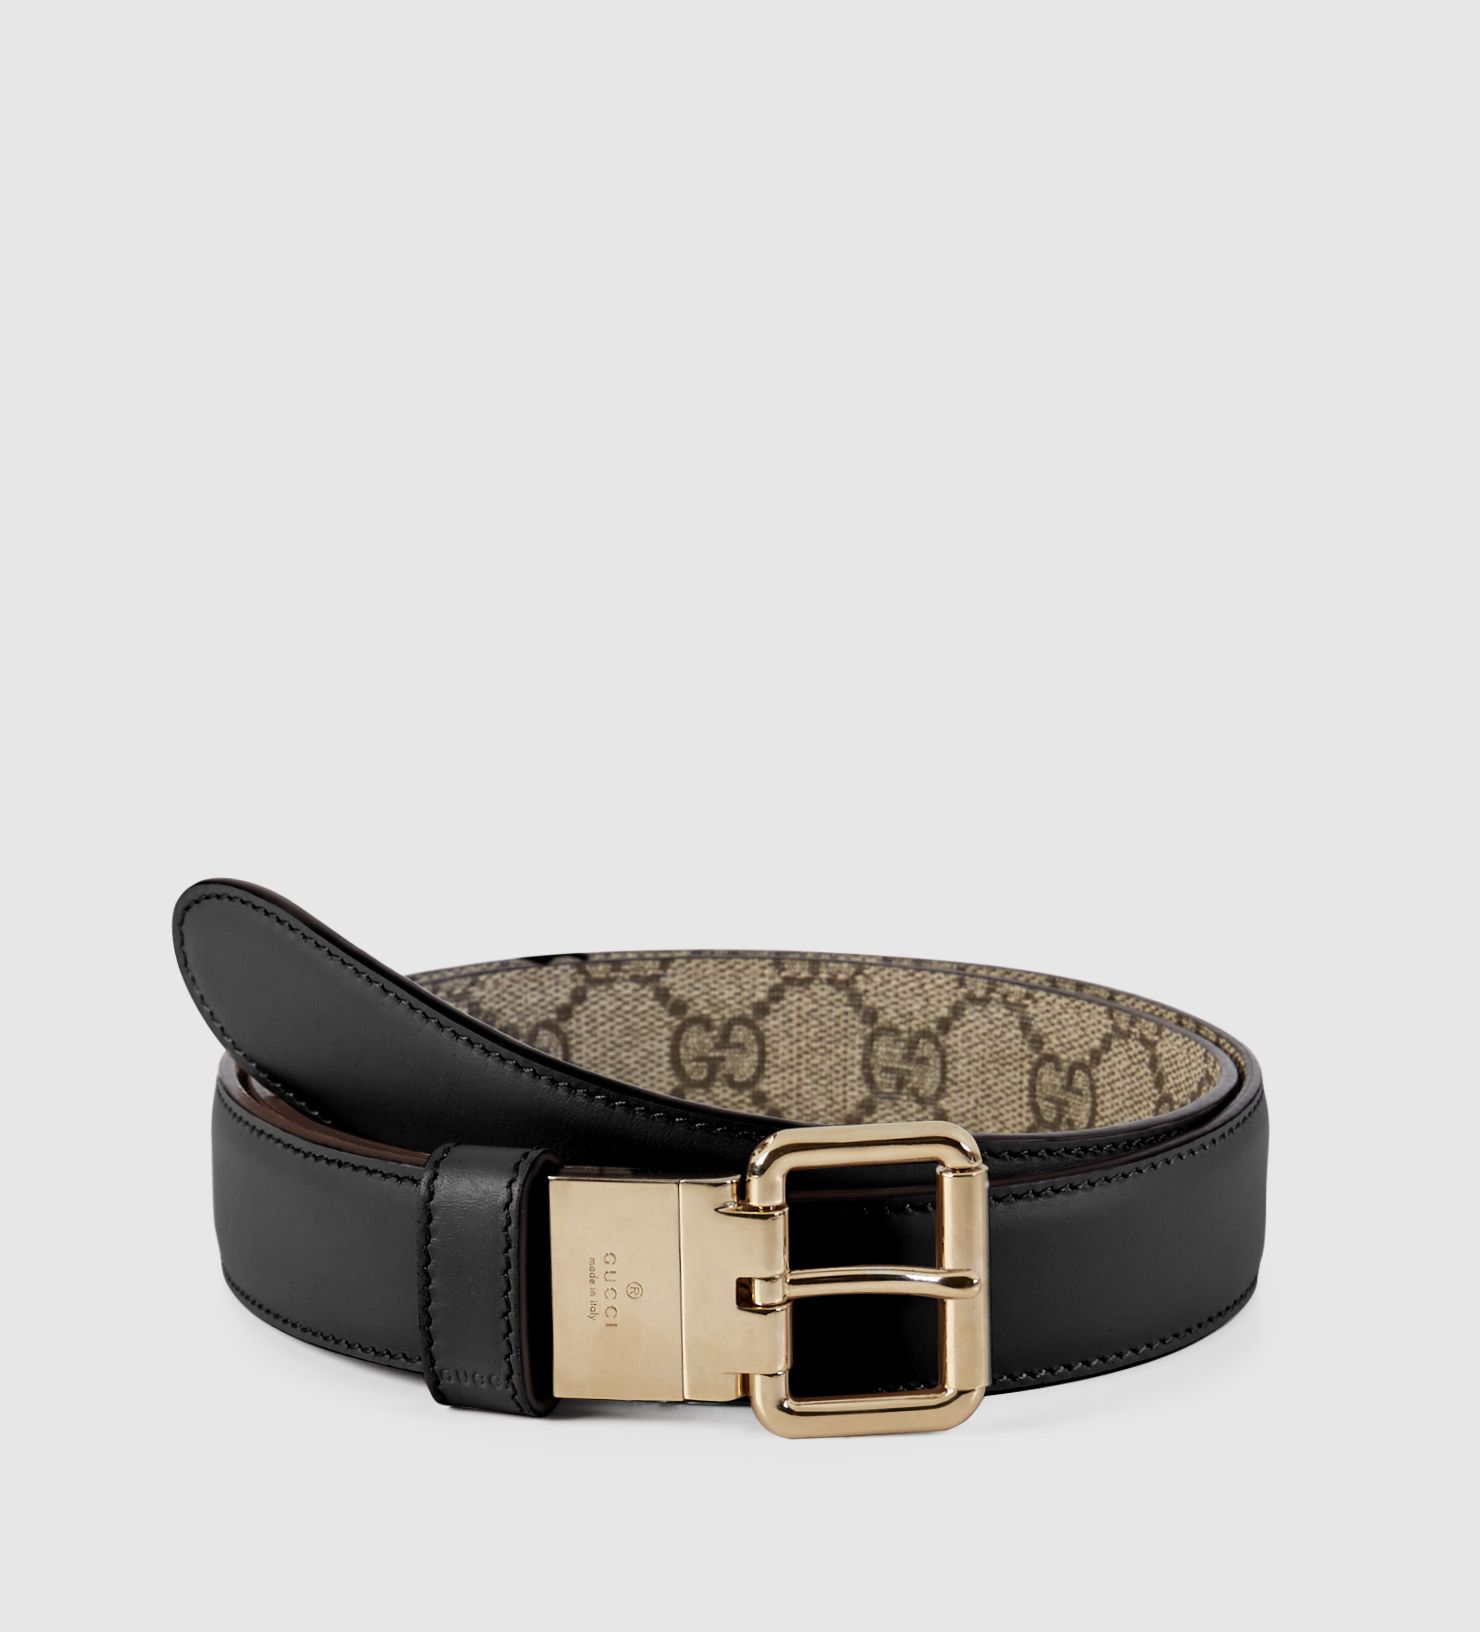 32a144257b7 Gucci Reversible Leather And Gg Supreme Belt in Black - Lyst